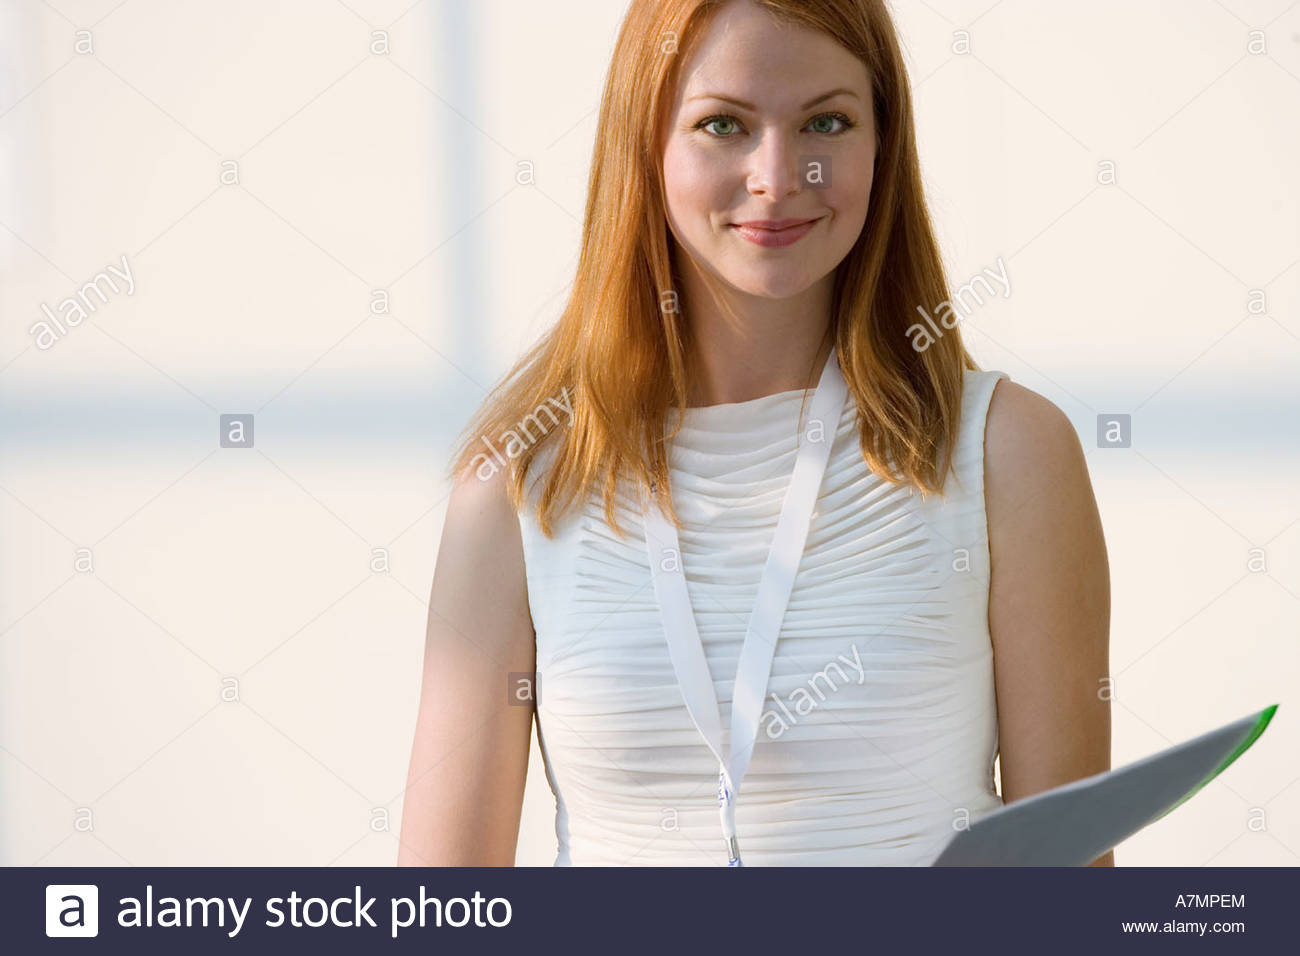 Woman in white sleeveless top holding folder smiling front view portrait - Stock Image